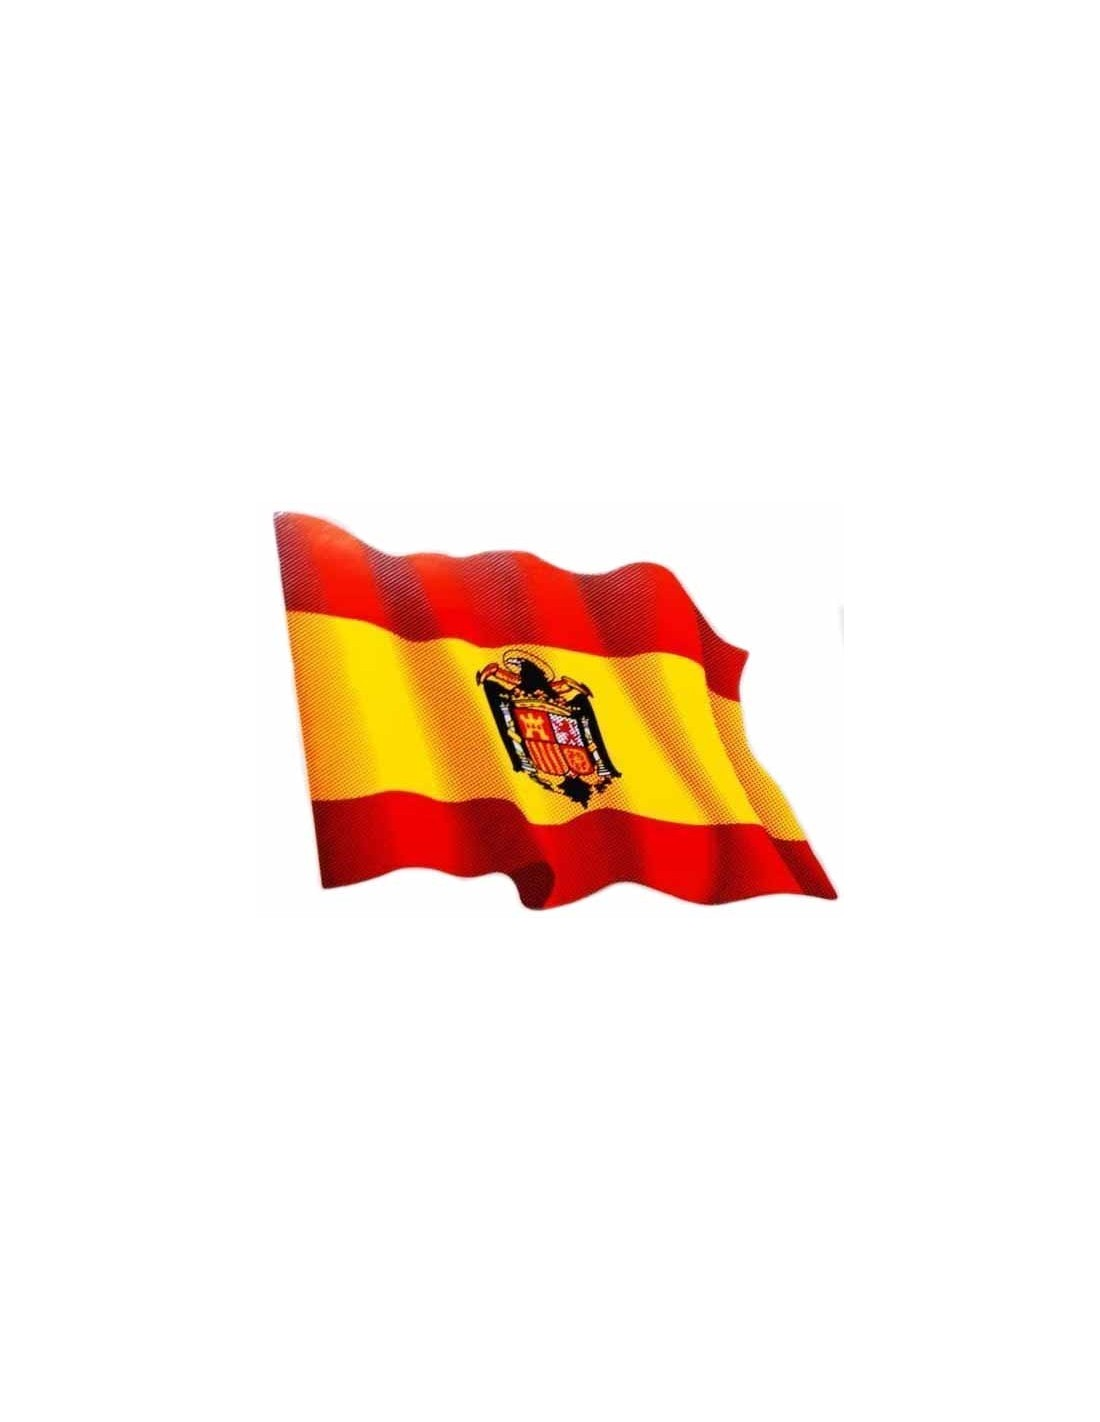 San juan eagle spanish flag sticker loading zoom